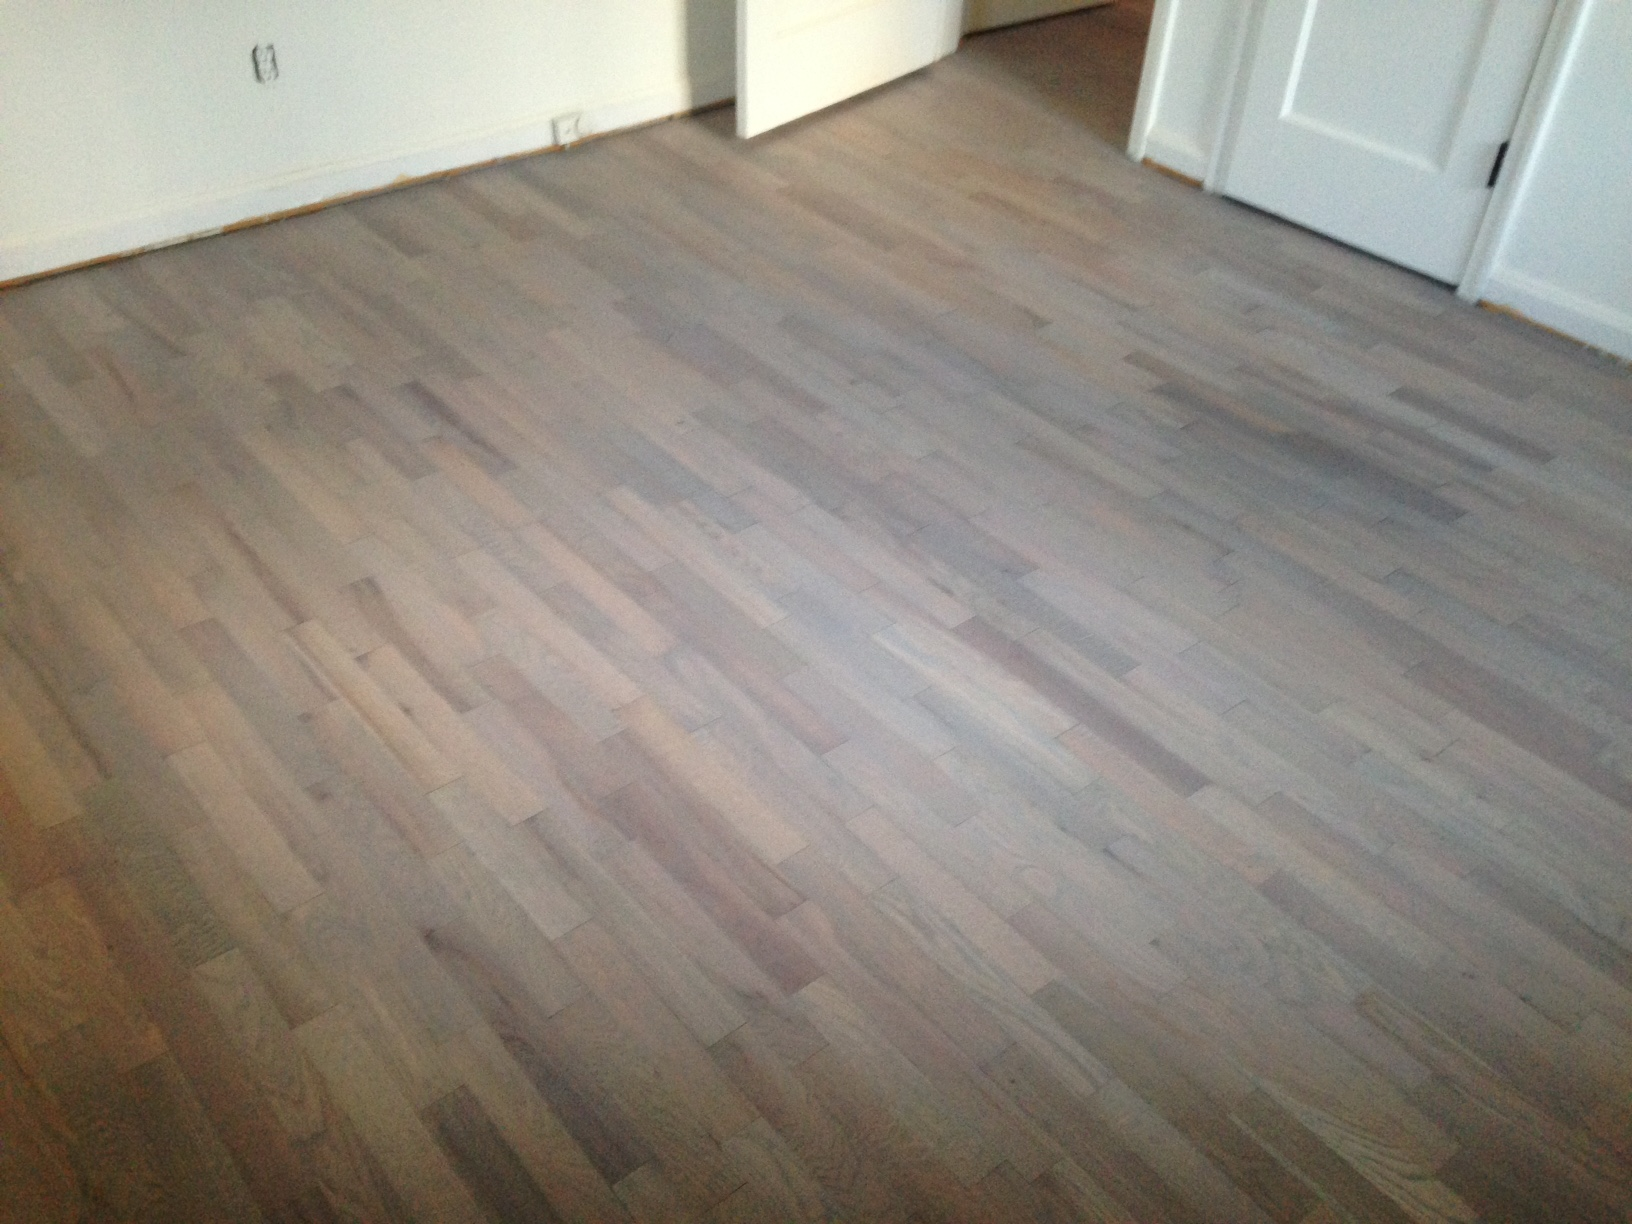 Refinishing Wood Floors For A Beach House Look Dan S